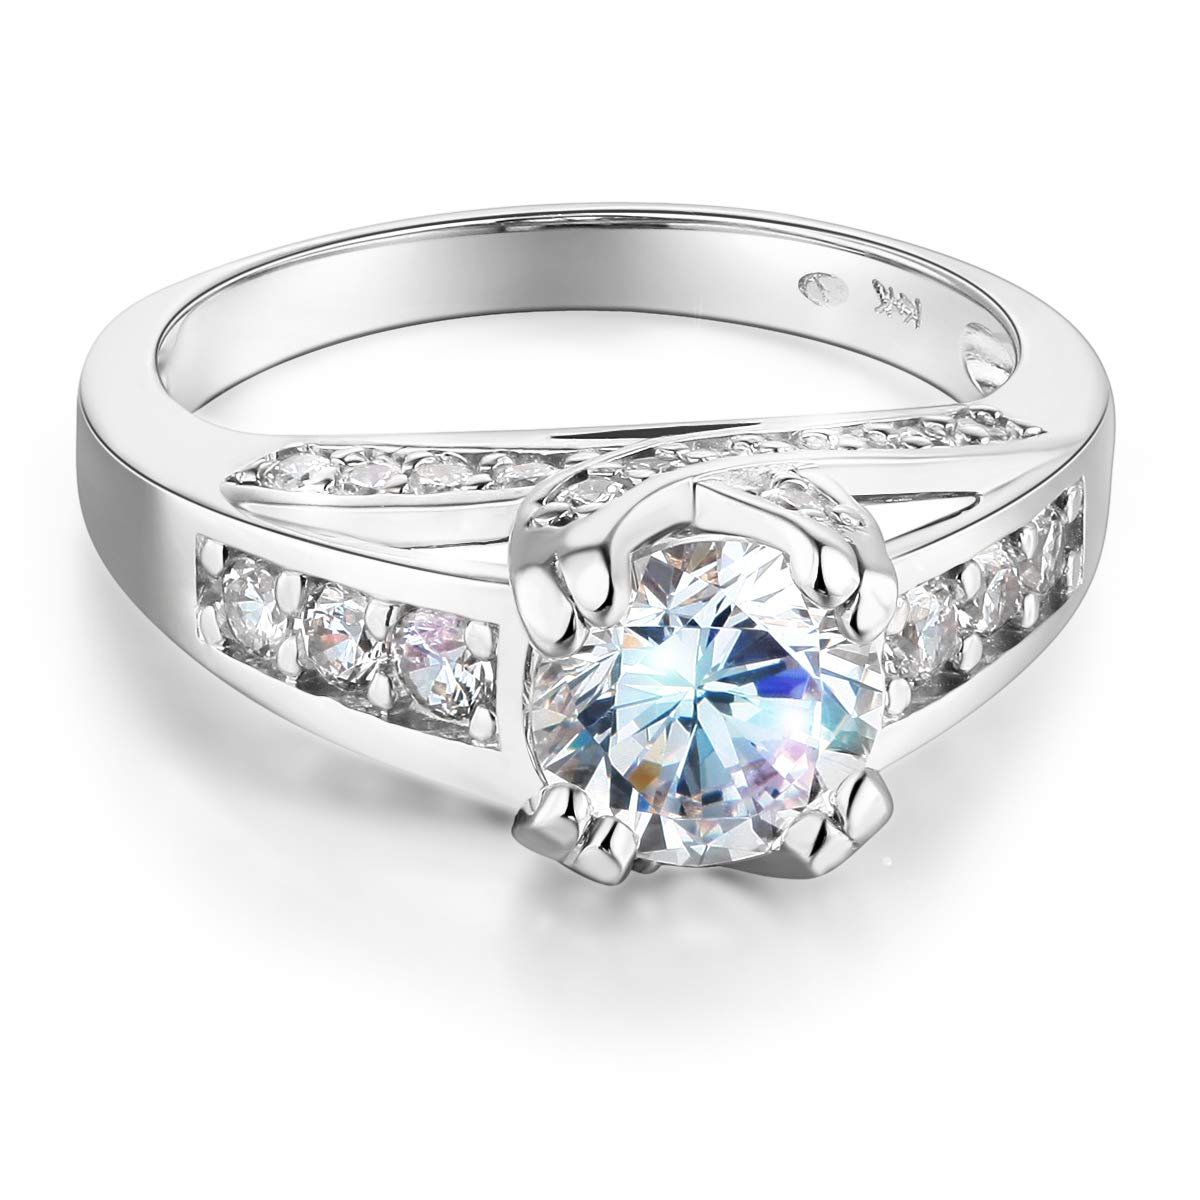 Wellingsale Ladies Solid 14k White Gold CZ Cubic Zirconia Round Cut Engagement Ring with Side Stones - Size 6